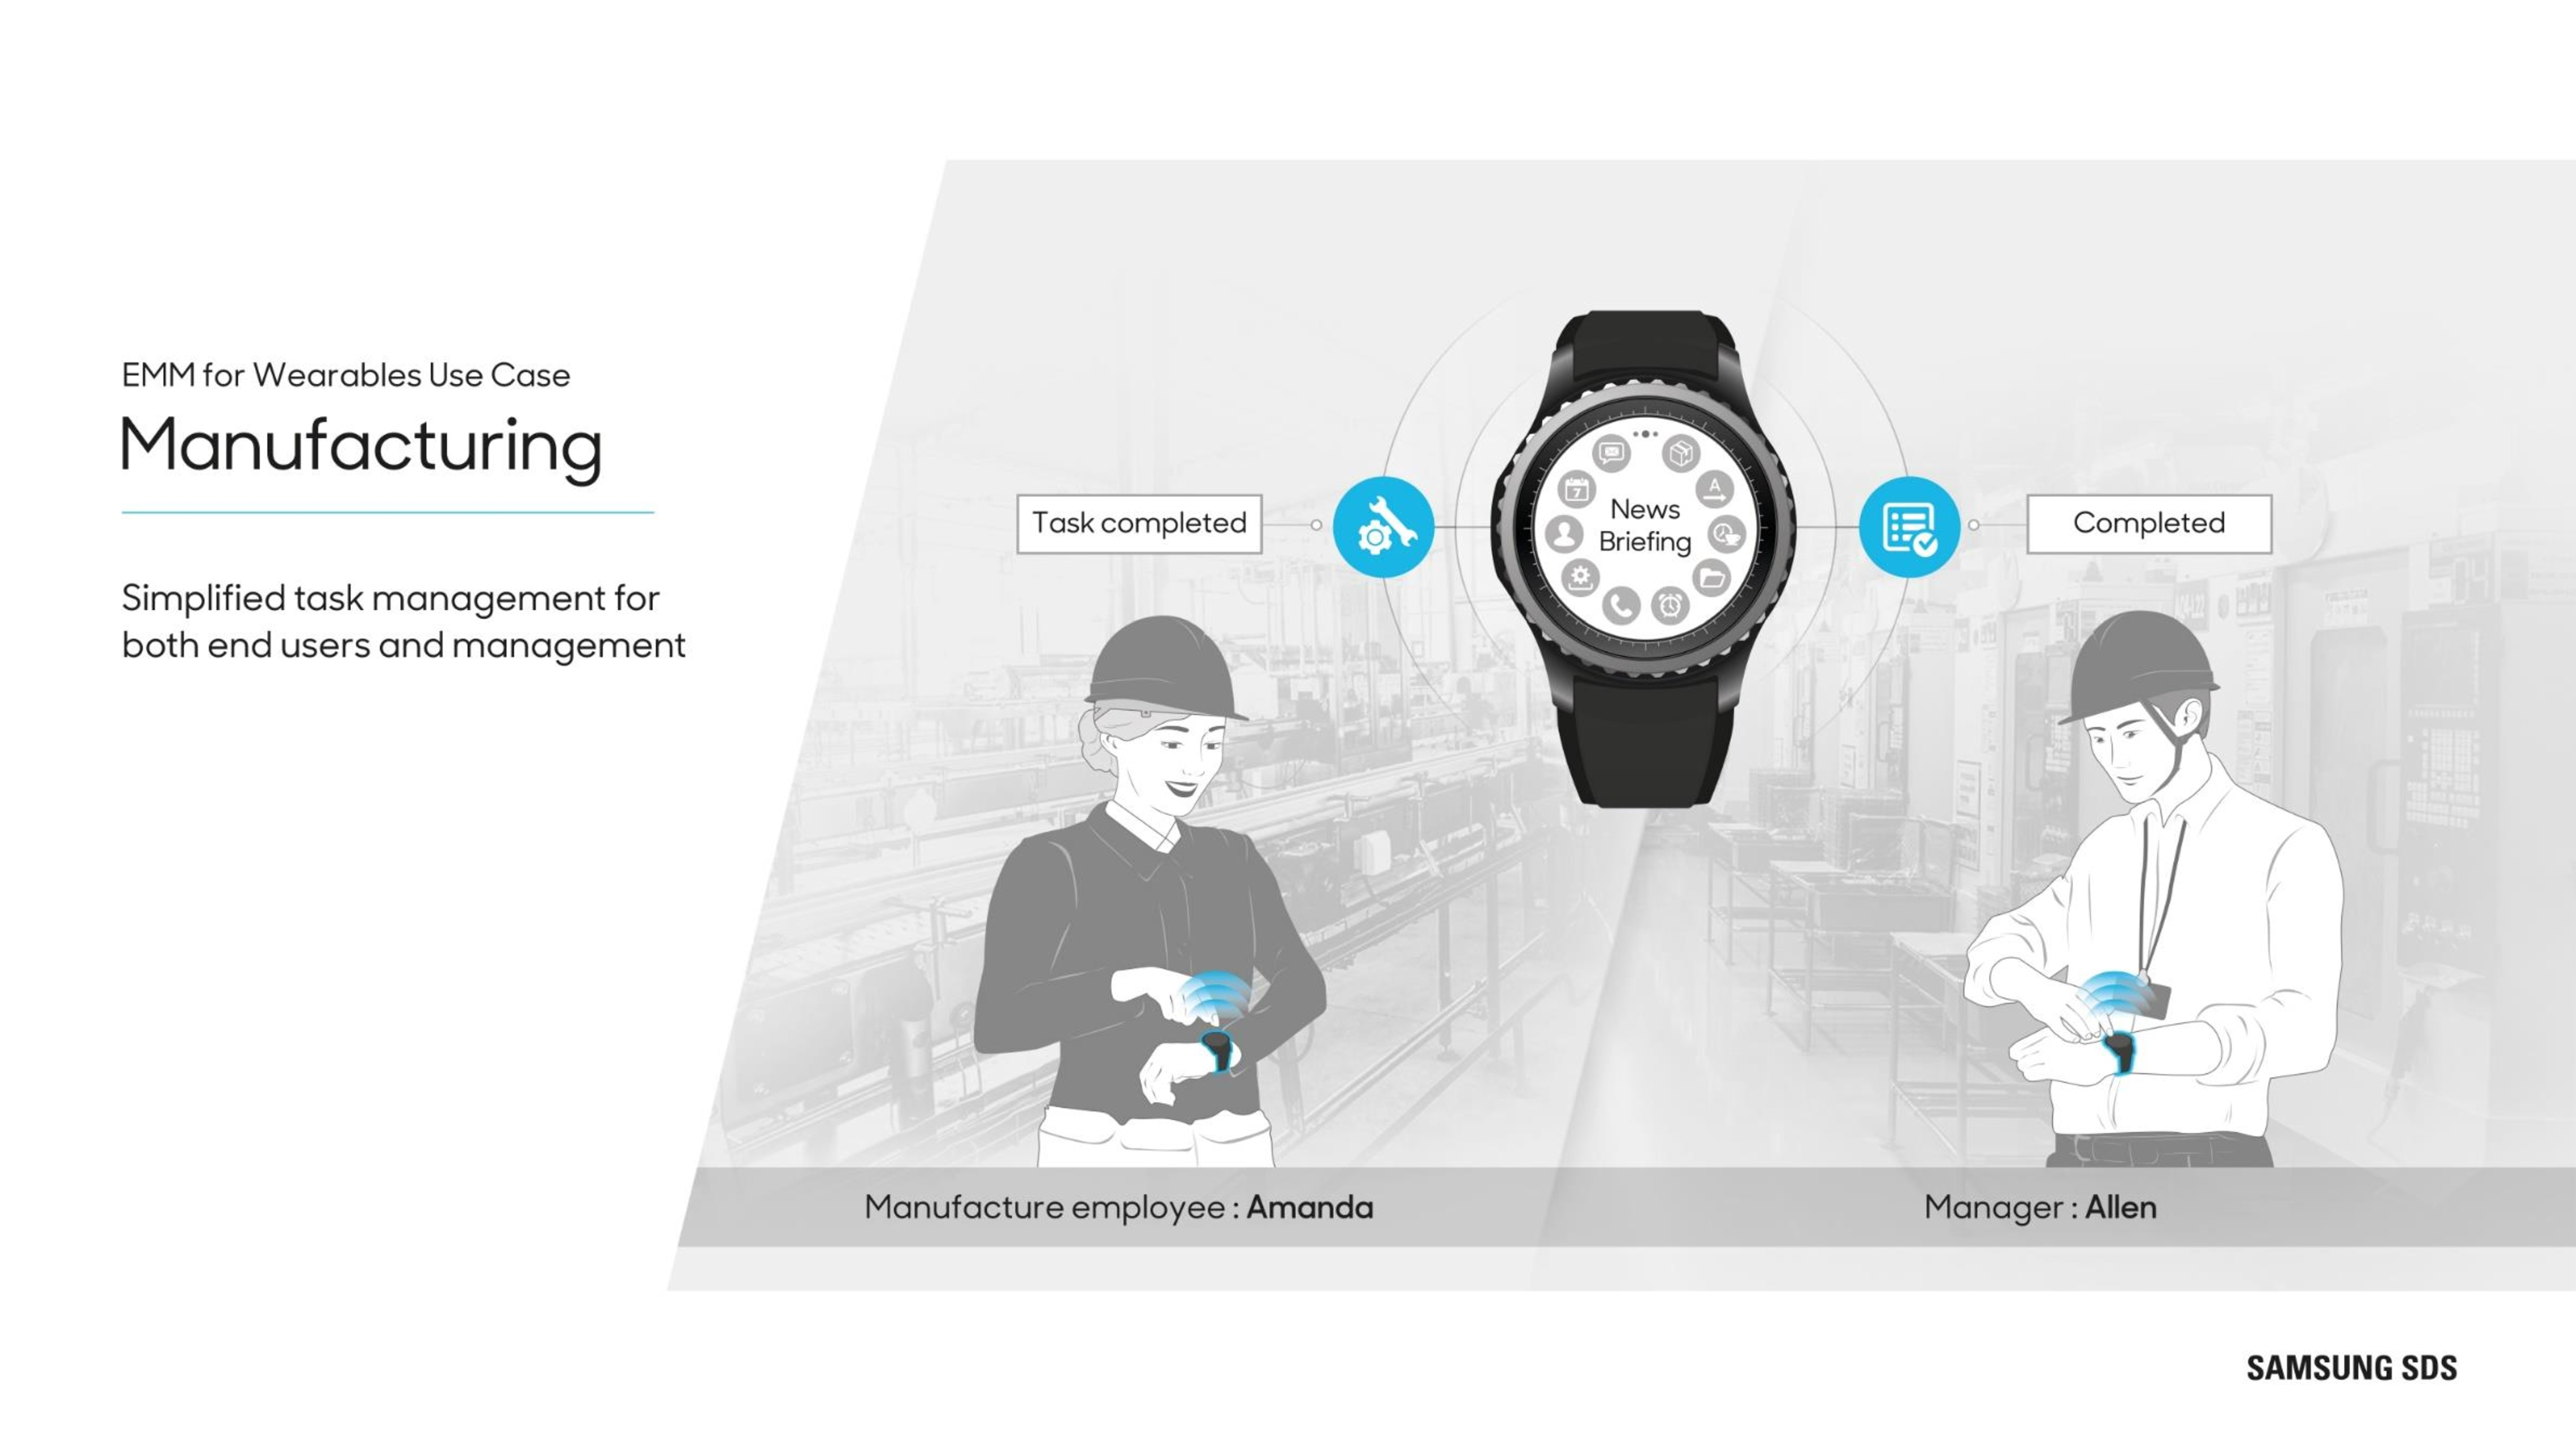 Wearables in Manufacturing Simplified task management for both end users and management